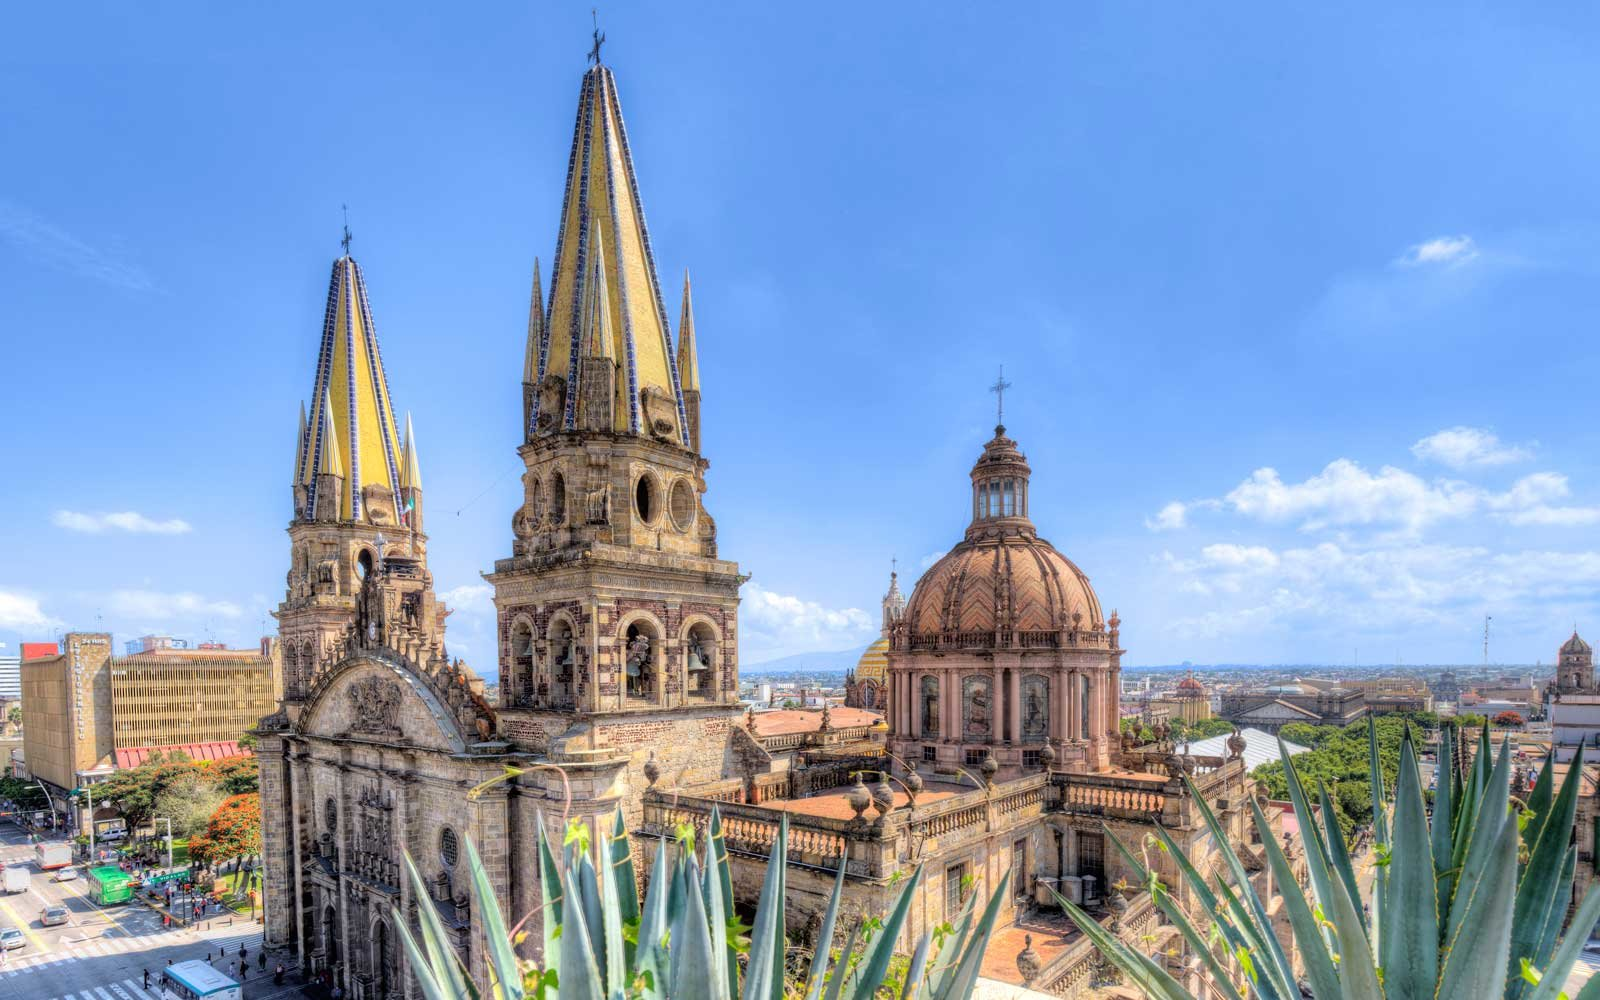 Guadalajara cathedral in Mexico